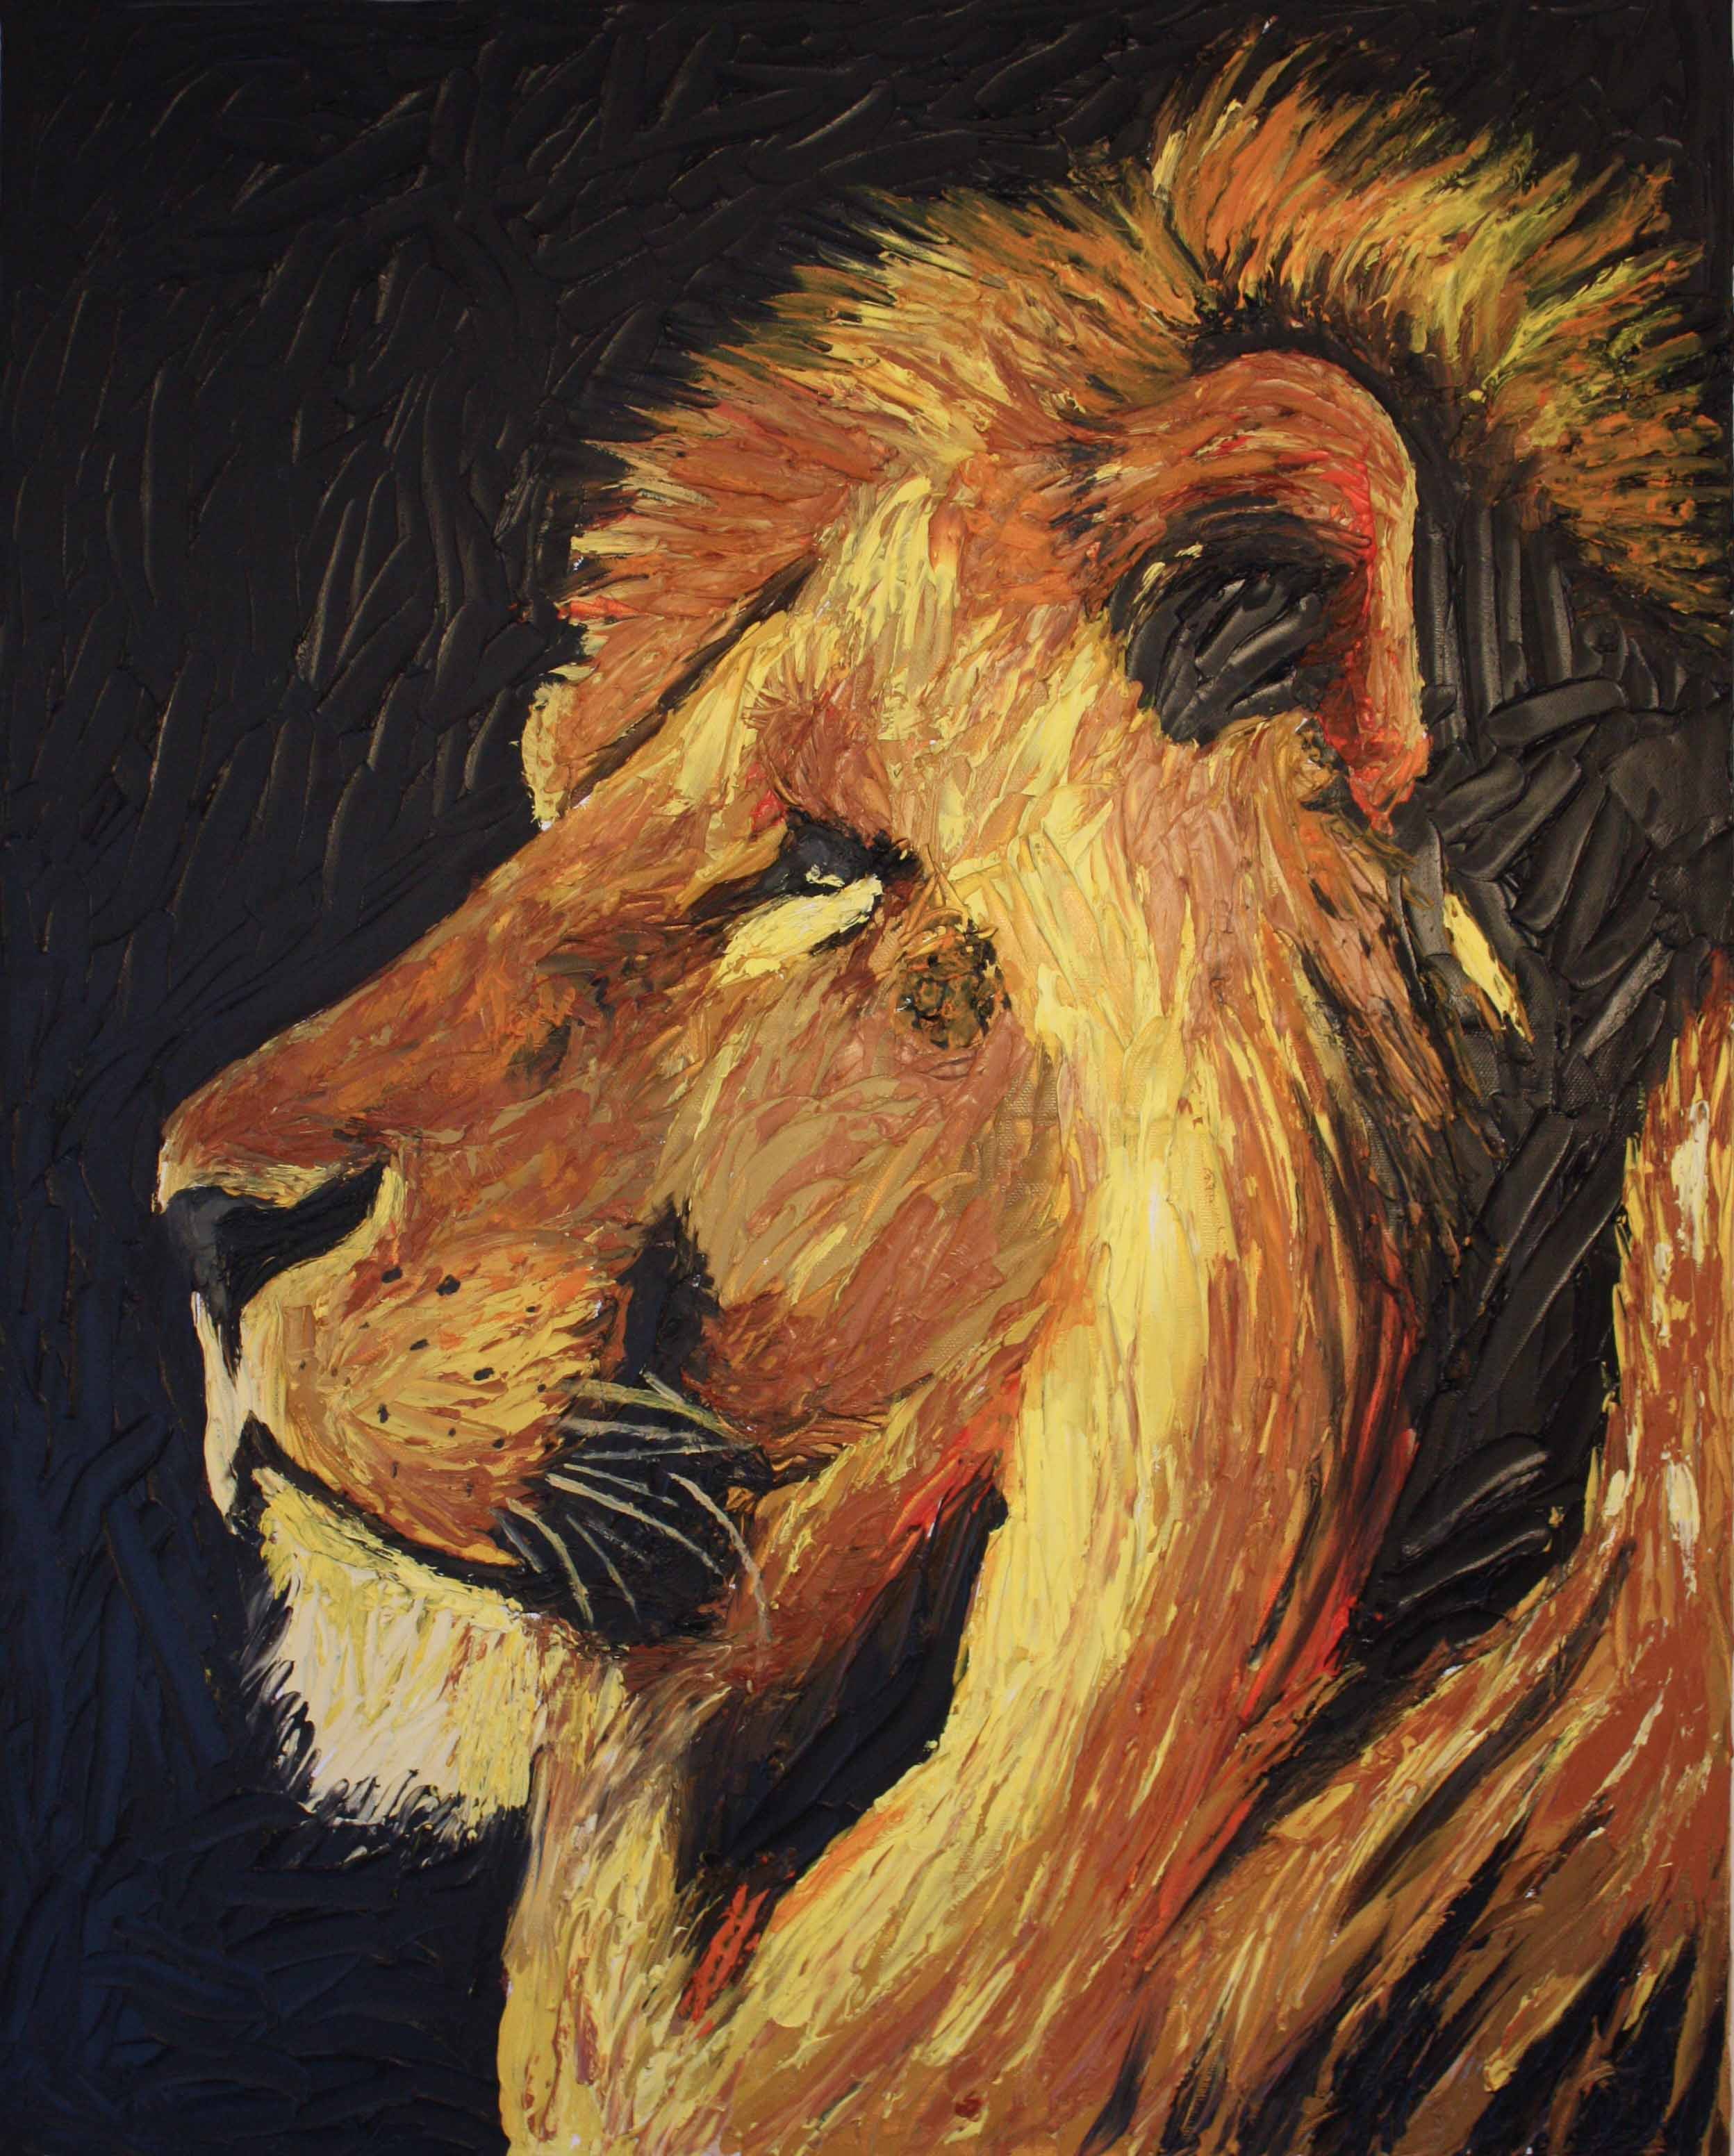 Lion Painting Lion-painting_light.jpg Colorful Lion Painting Zena Grey 2013